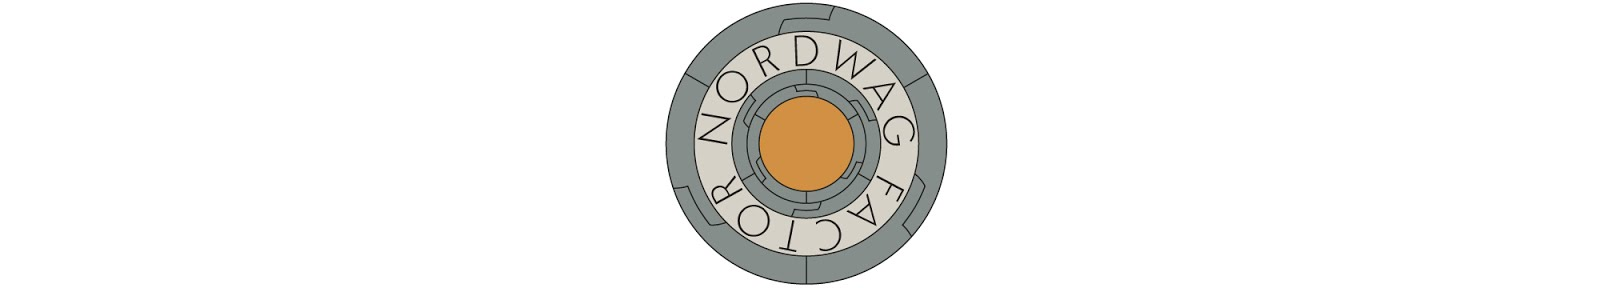 Nordwag Factor